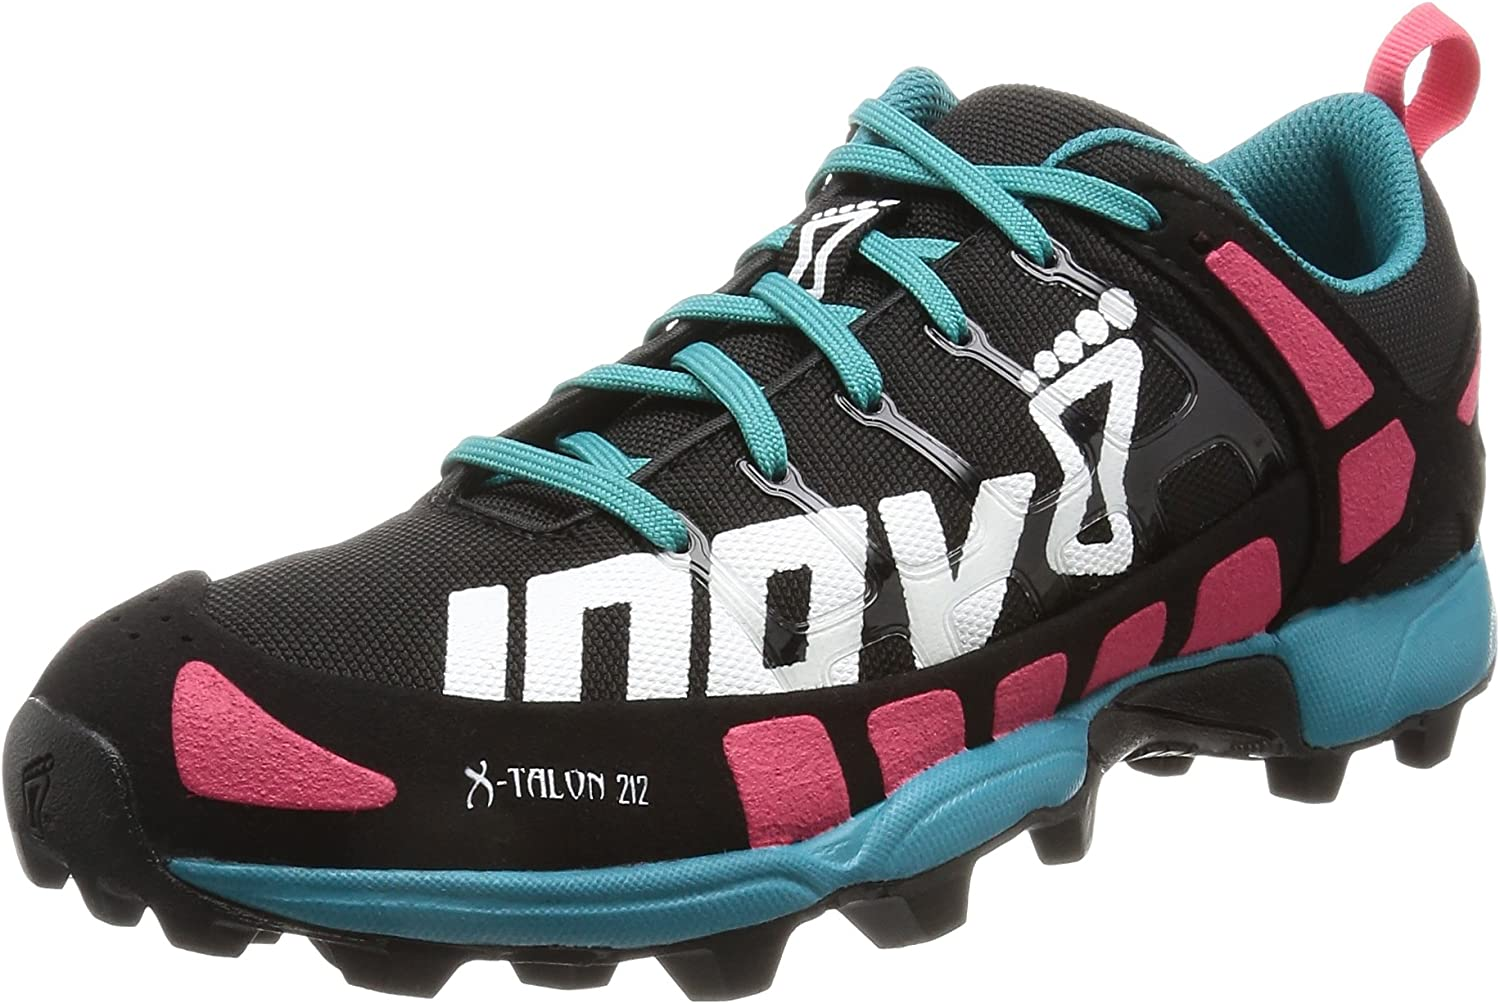 Inov-8 Women's X-Talon 212 Trail Running Shoe